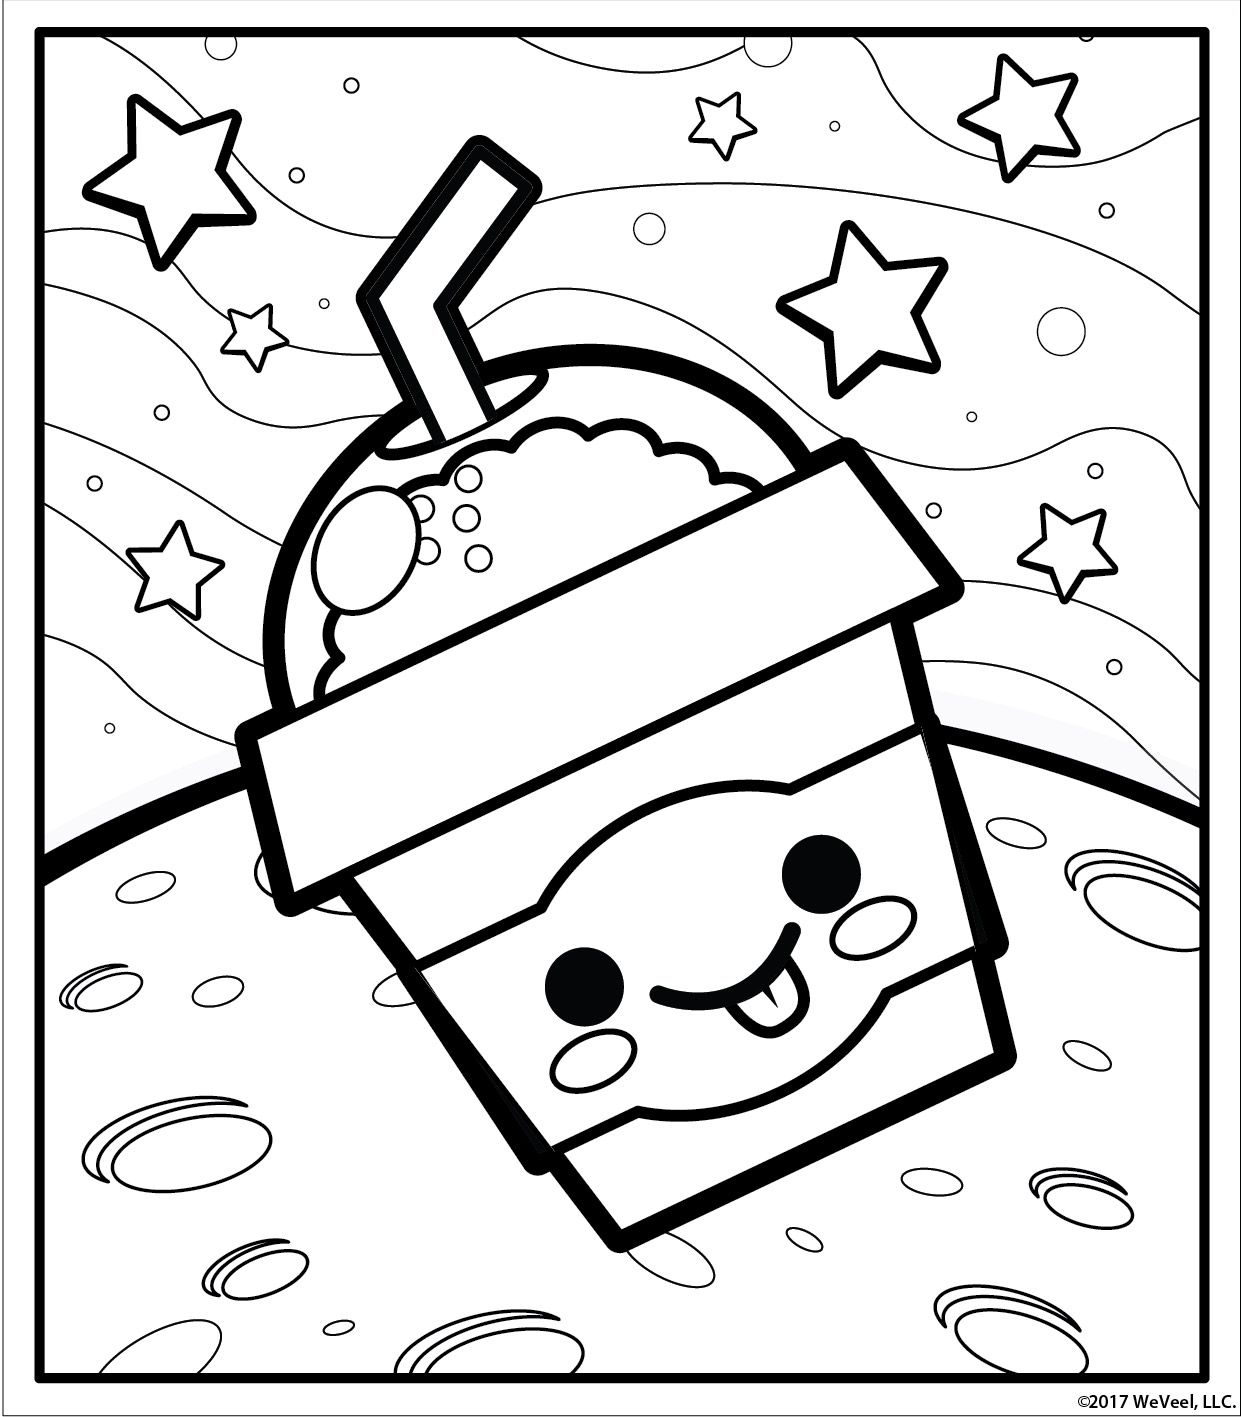 coloring pages for girls | scentos | kid crafts | coloring